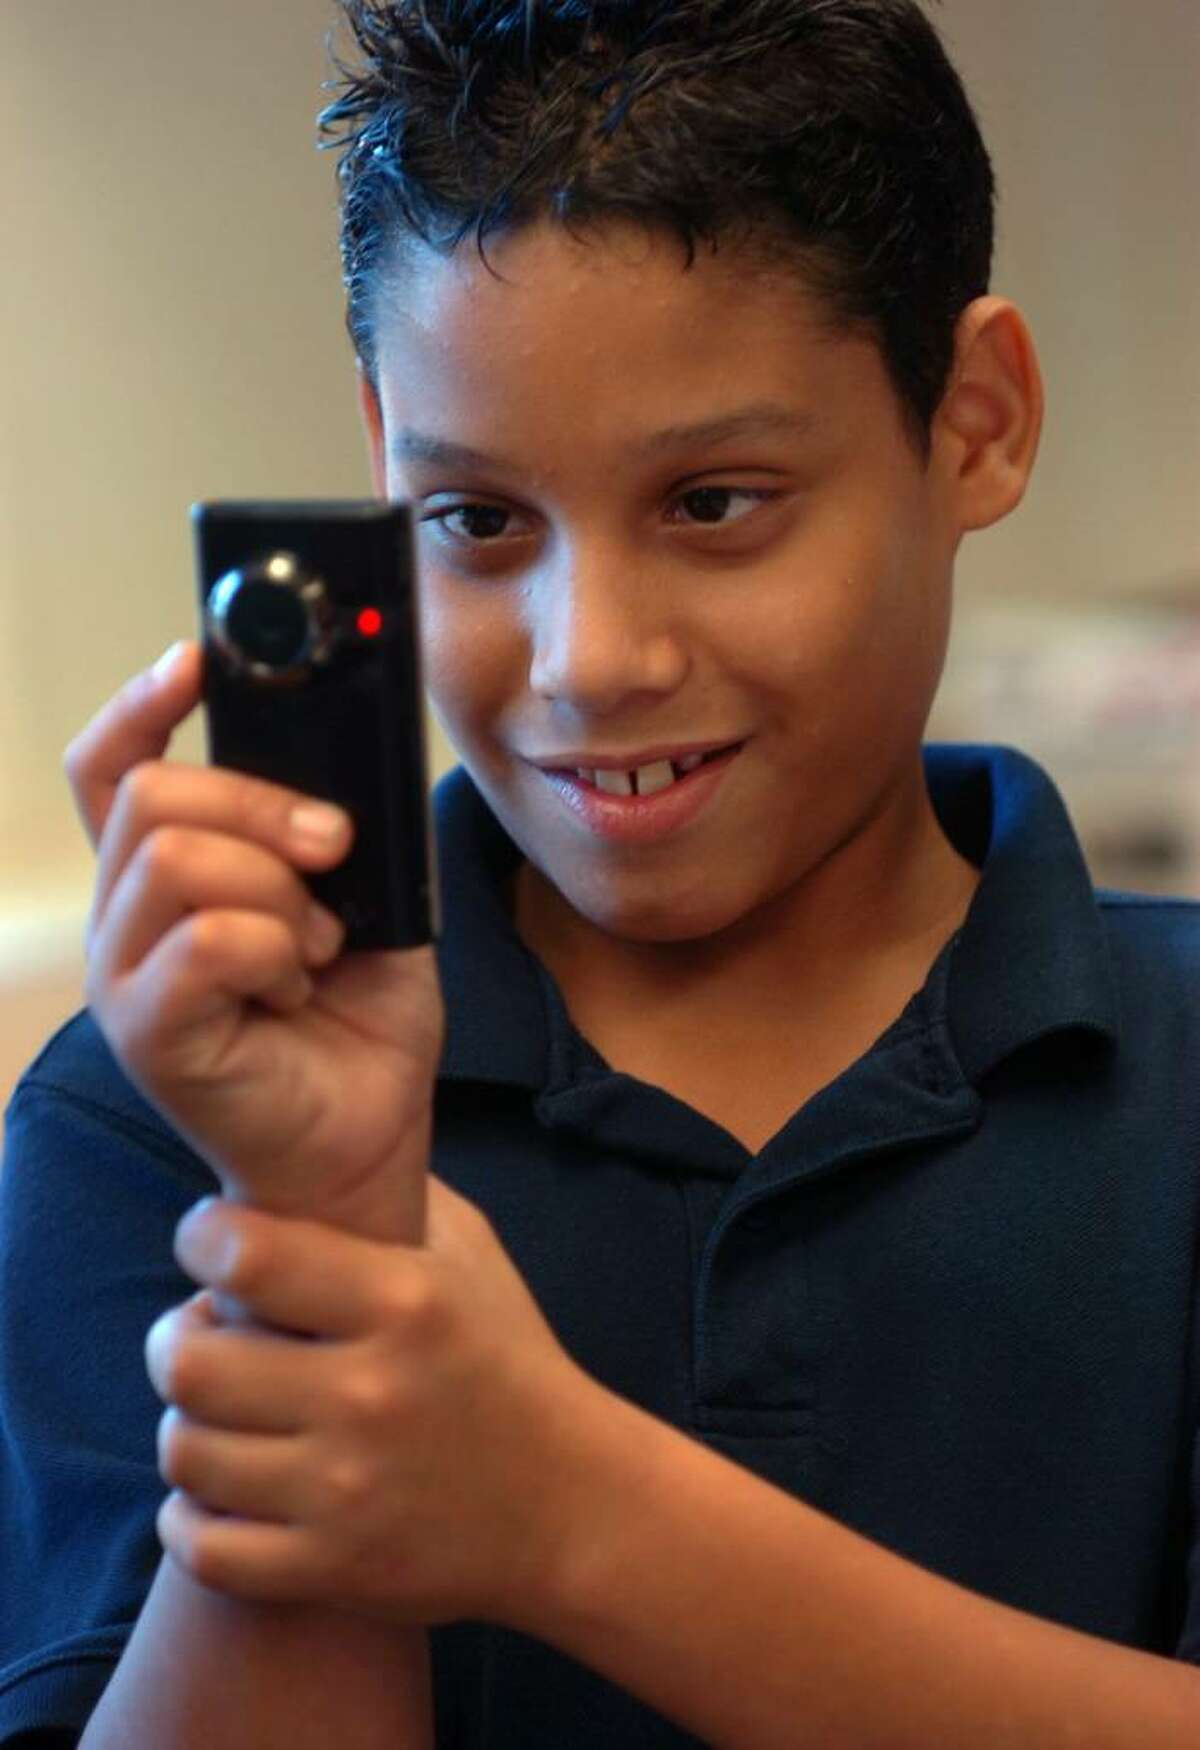 Through a collaboration with the Fairfield Community Theater, a group of Bridgeport kids take part each week in a film school at the Burroughs Community Center. Here, Jovanni Soto, 12, films the